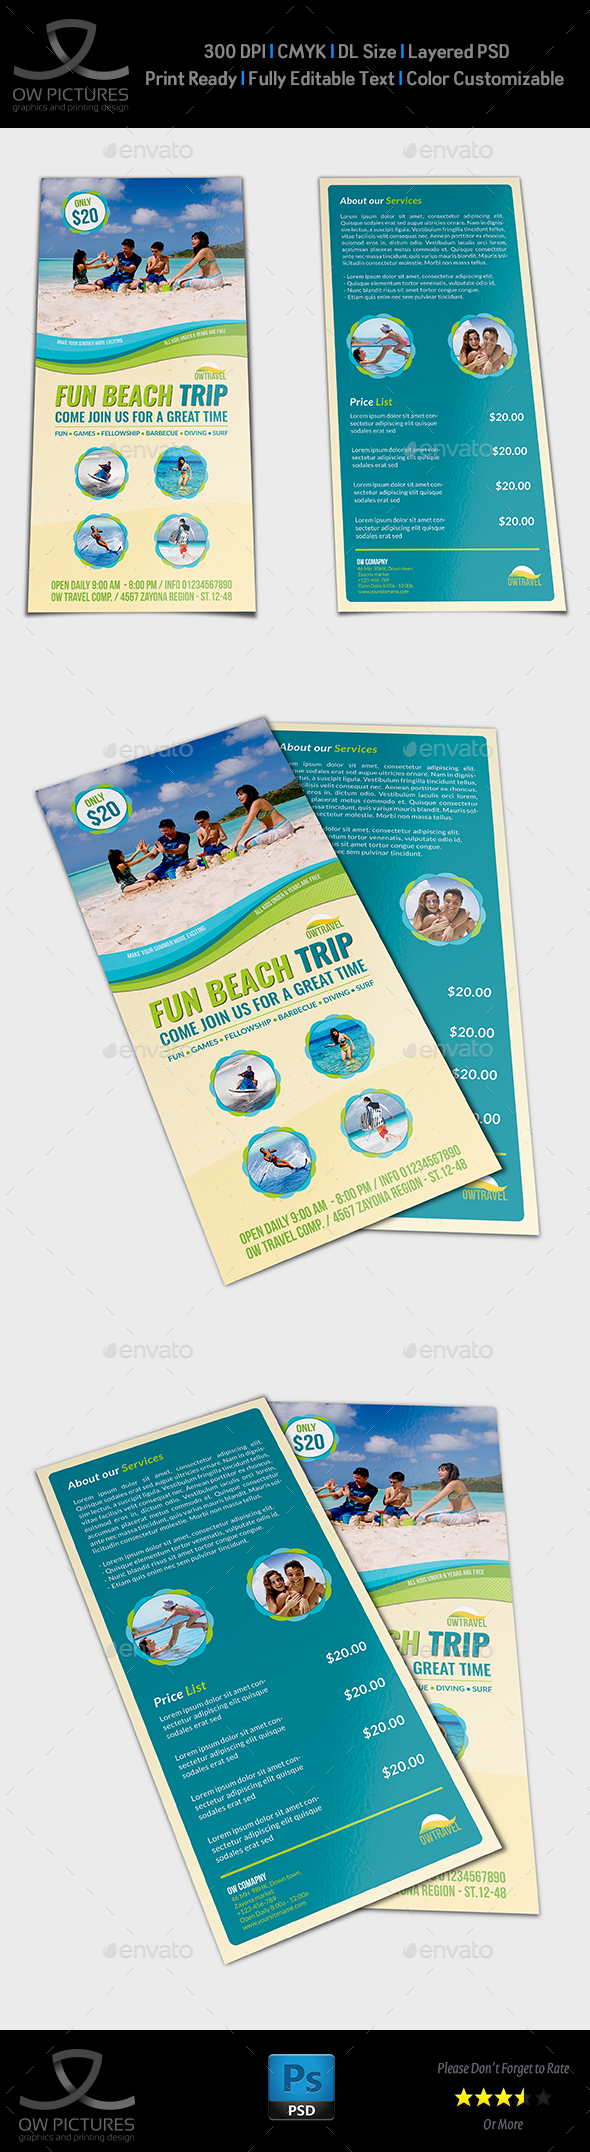 Tour And Travel DL Size Flyer Template By OWPictures GraphicRiver - Dl size flyer template